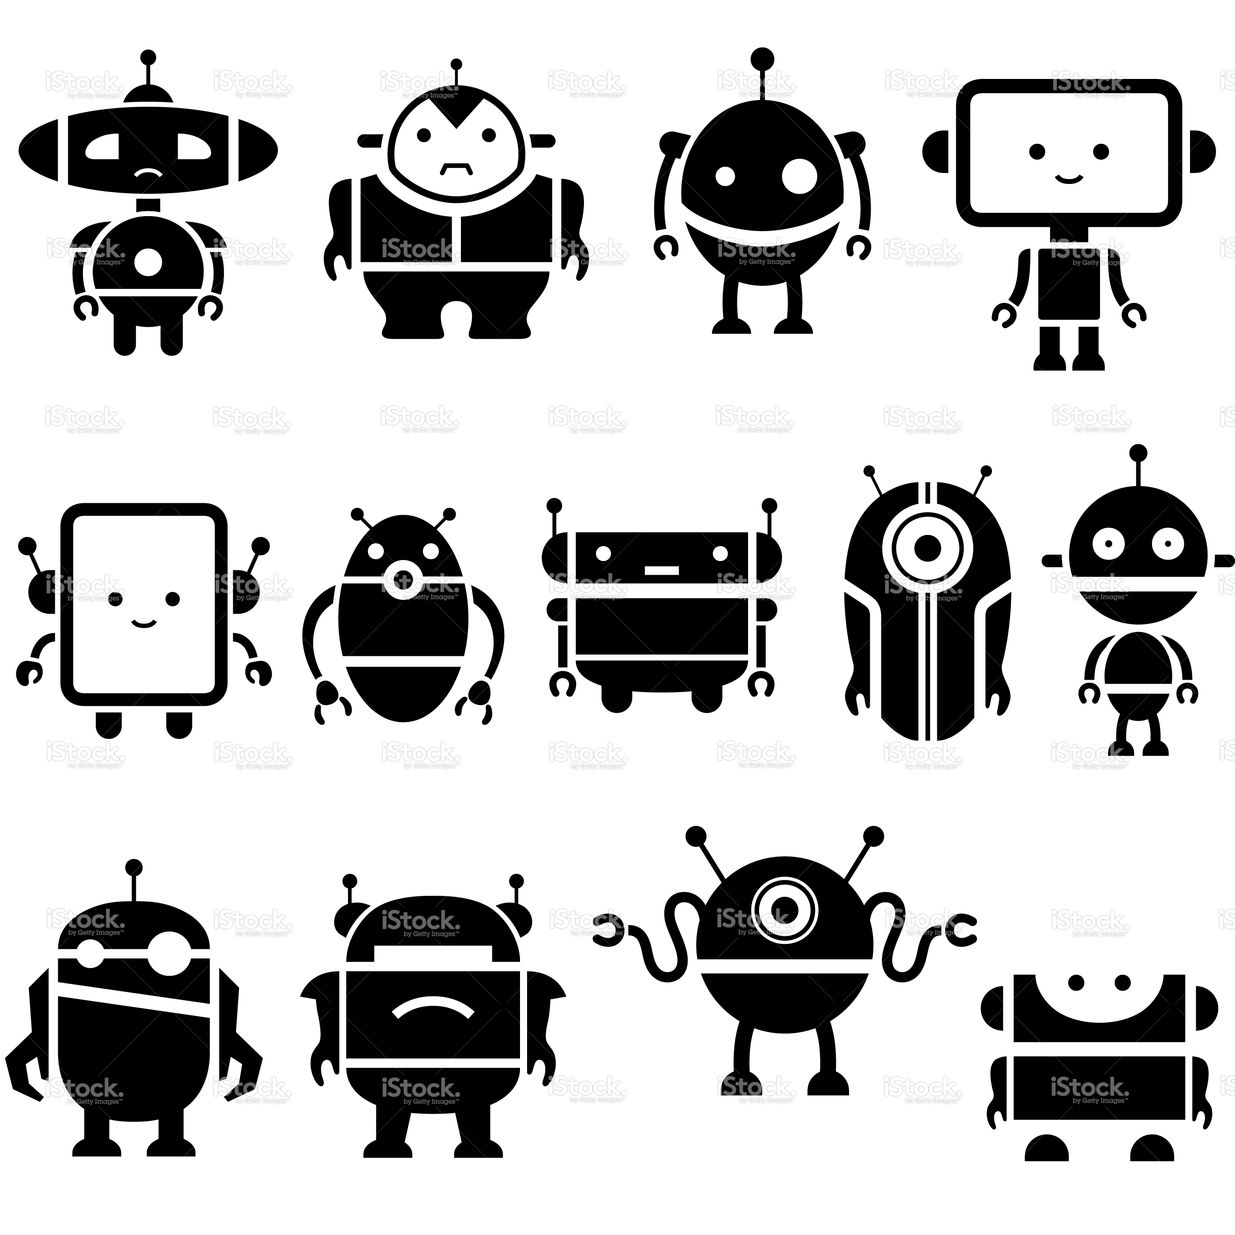 Simple Robot Character Symbols Art For Little Ones In